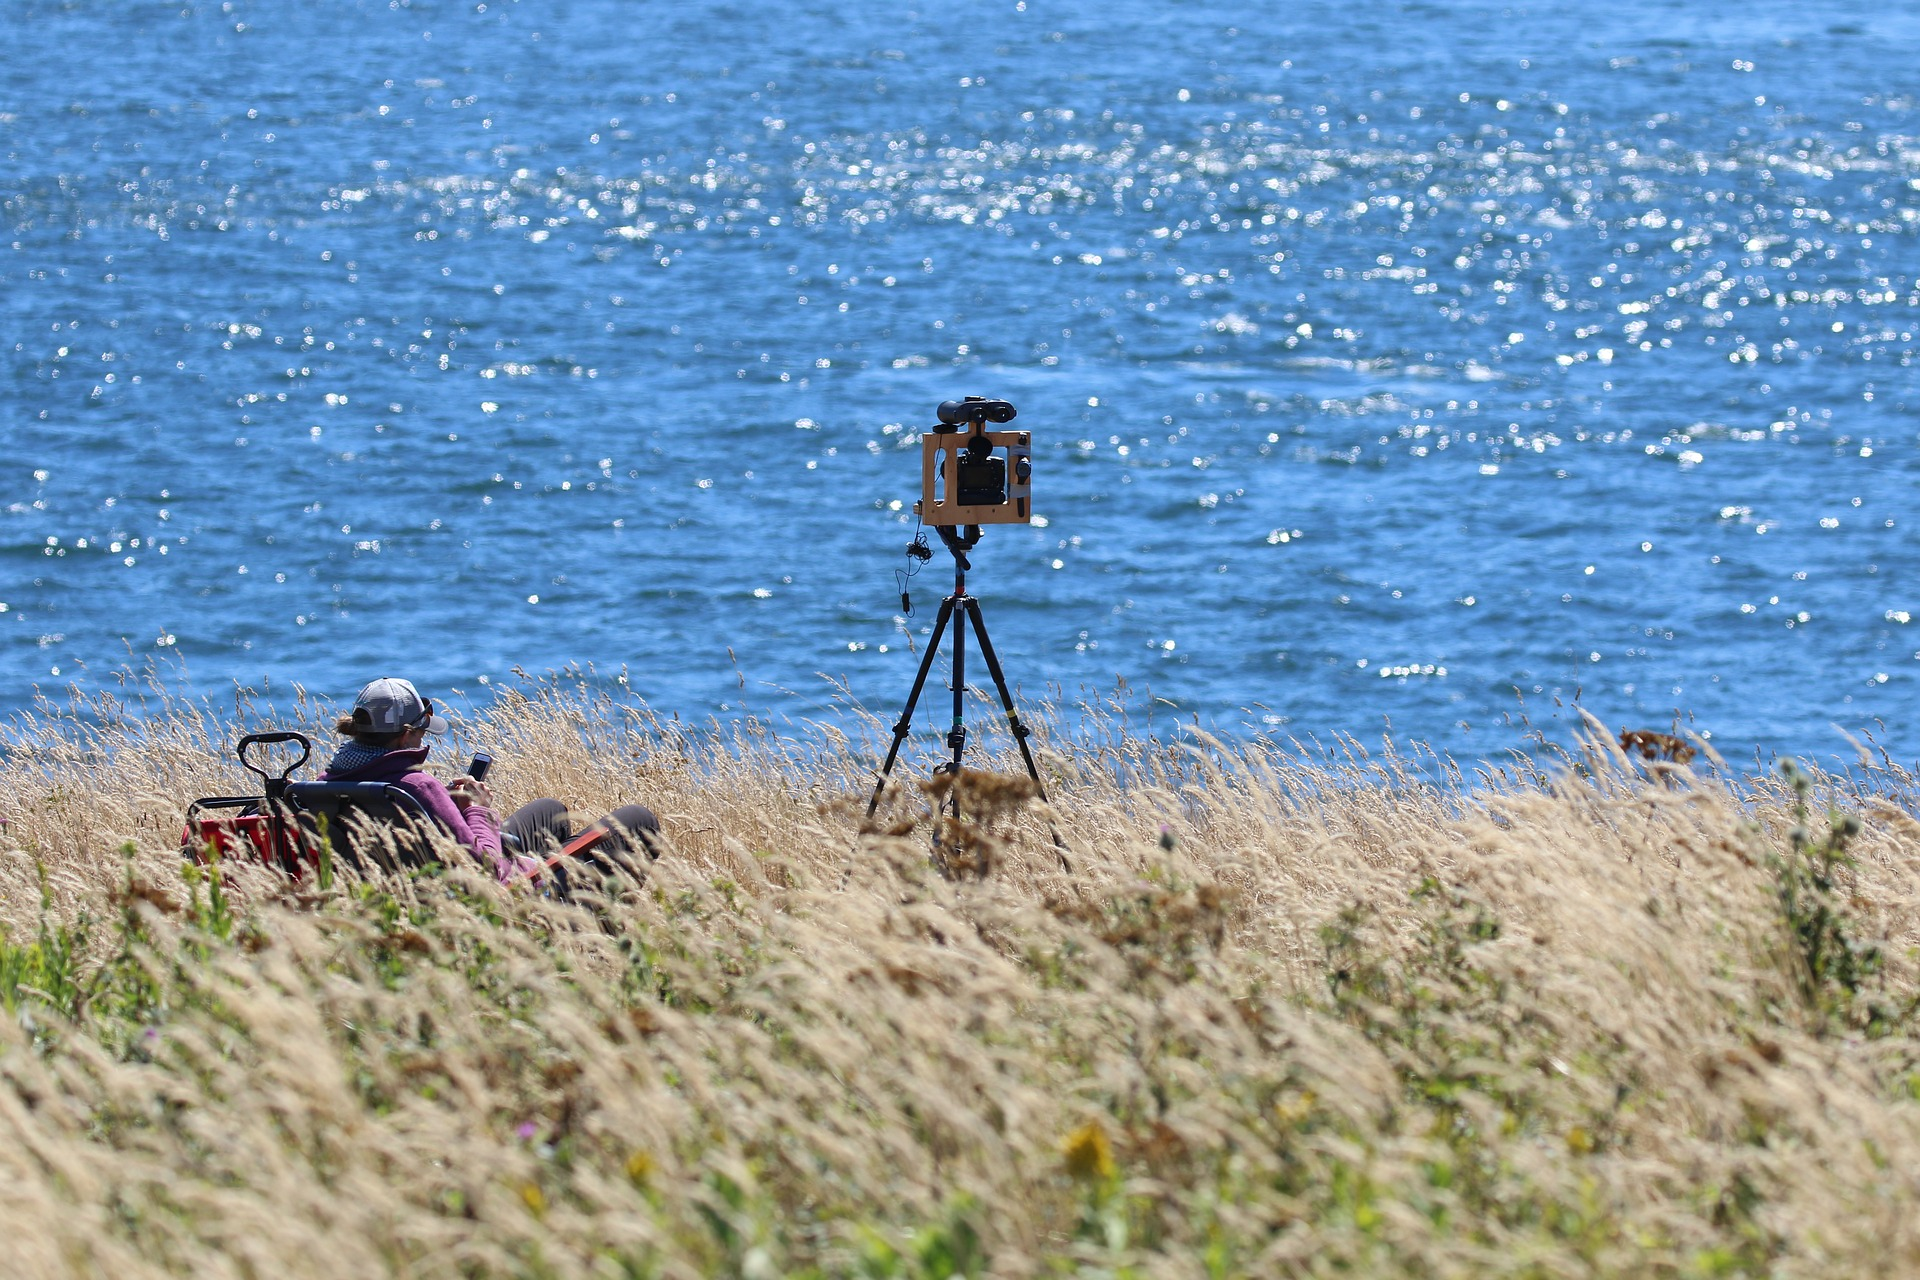 A lone researcher sits on a field near the ocean with a survey device.